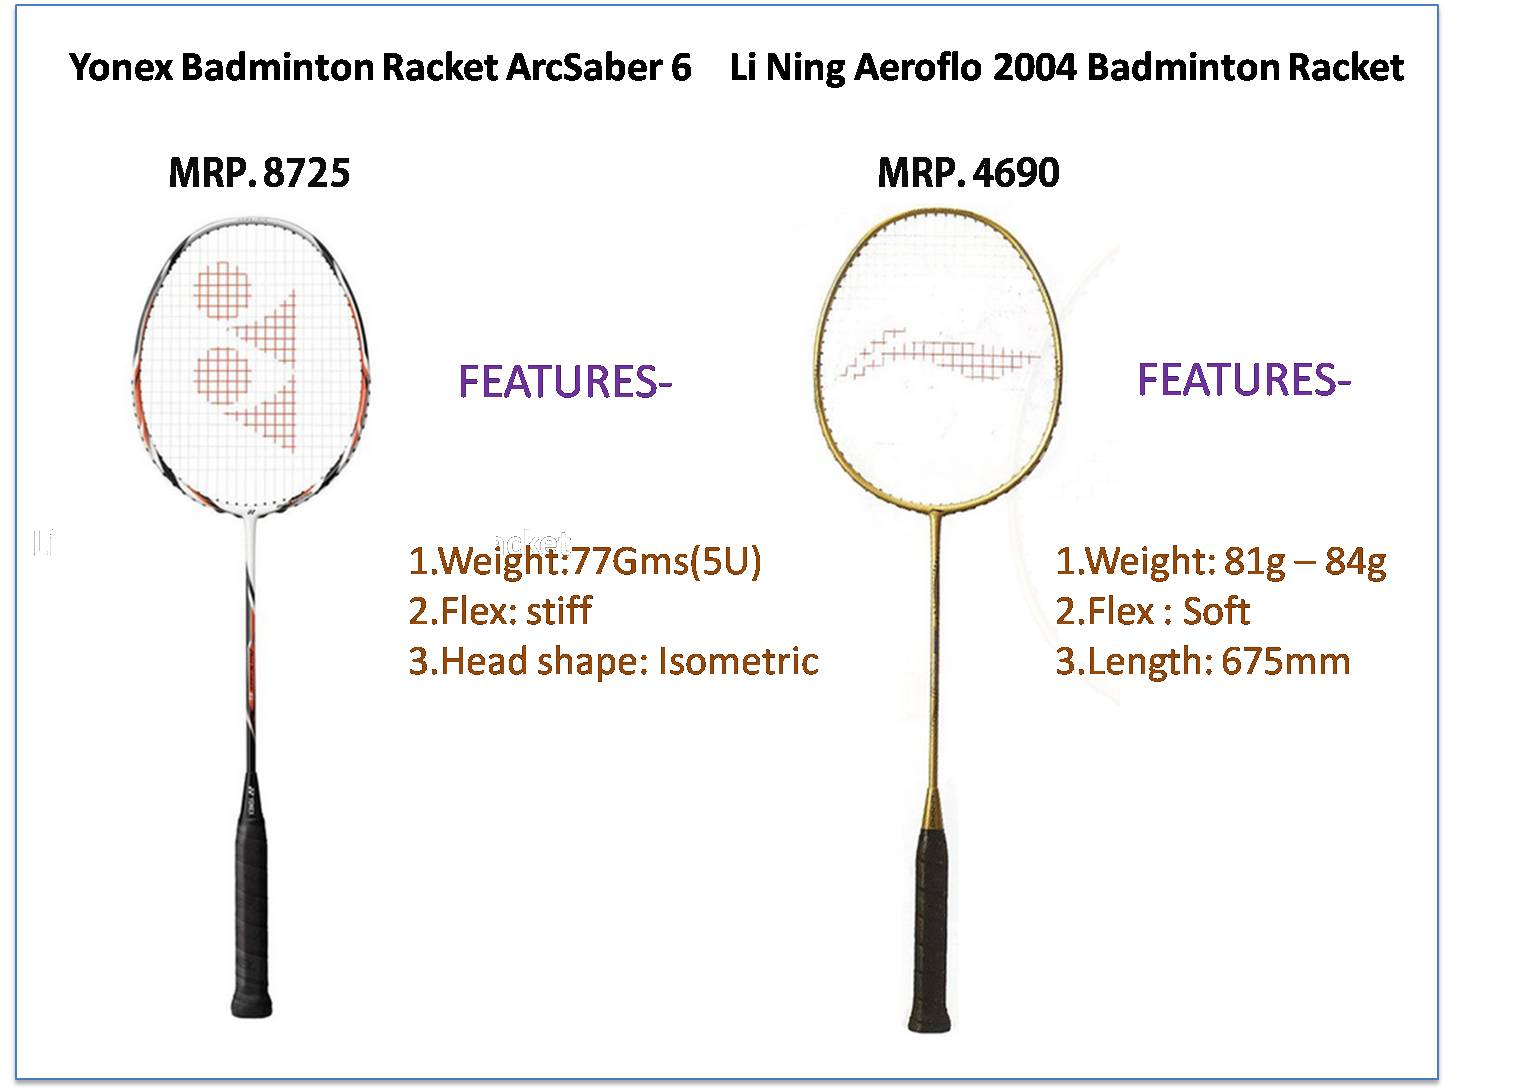 Comparison Between Yonex Arc Saber 6 And Li Ning Aeroflo